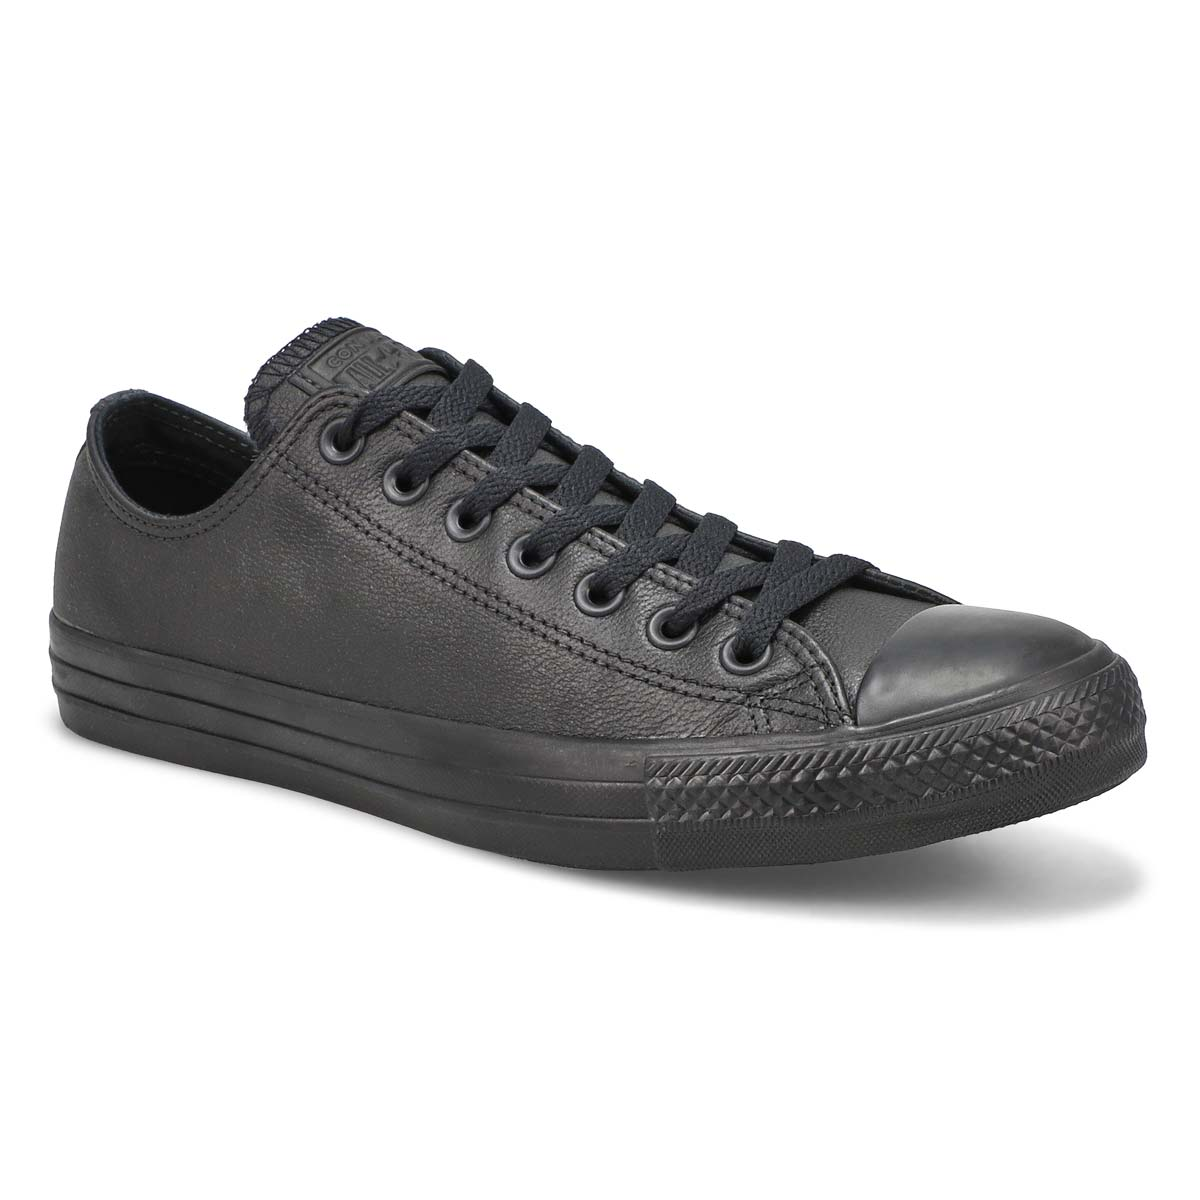 Mns CT All Star Leather blk mono sneaker